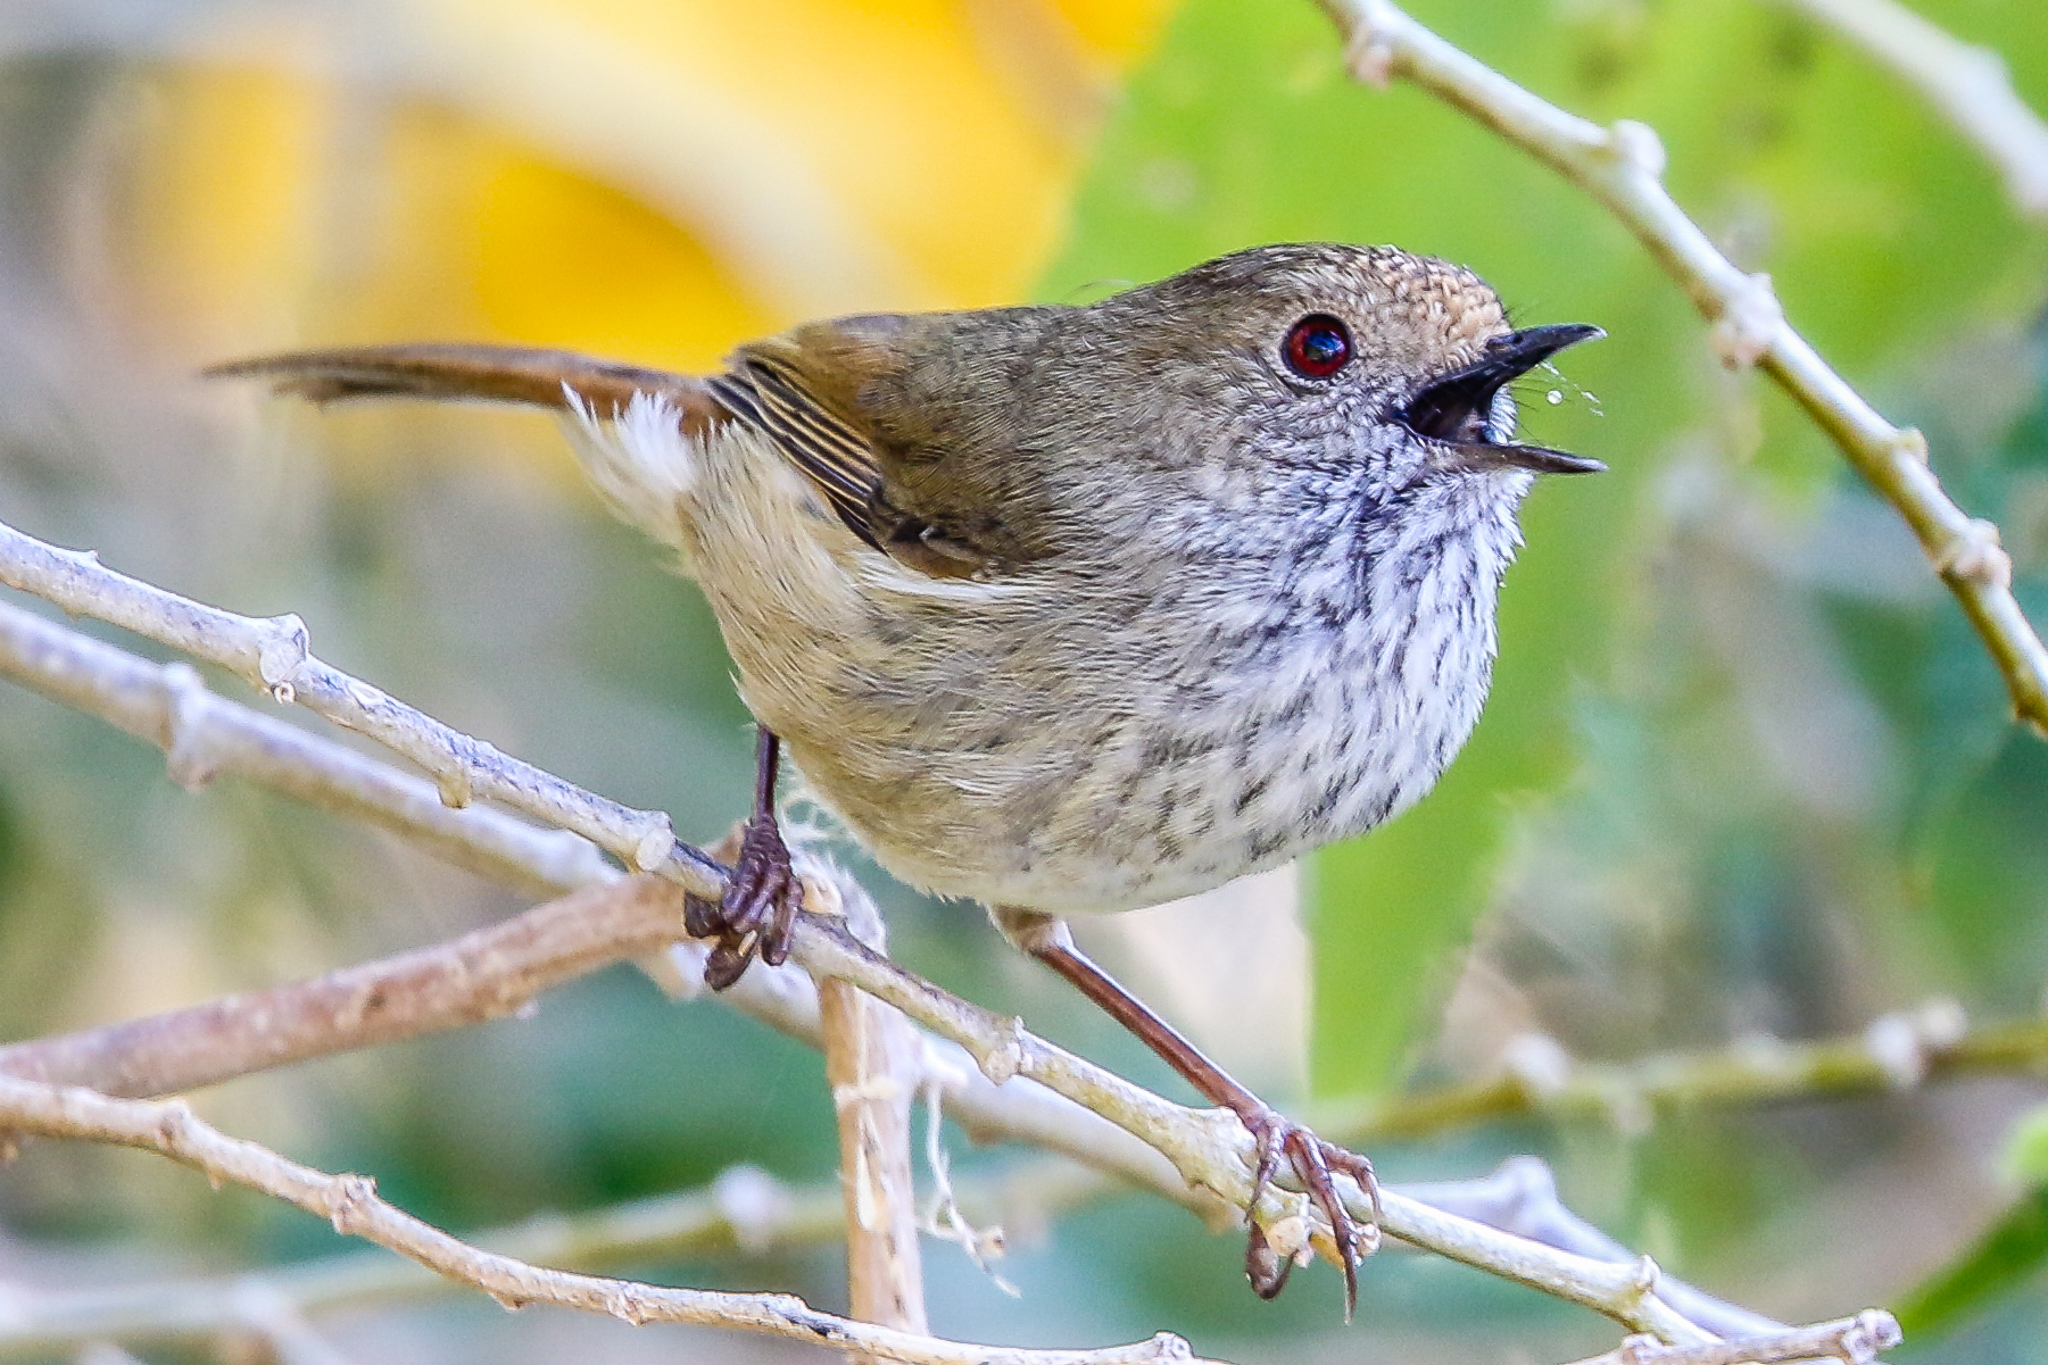 The Brown Thornbill uses dense and shrubby bush to provide food, shelter and safety. Bush clearing reduces numbers and endangers these and other small birds.